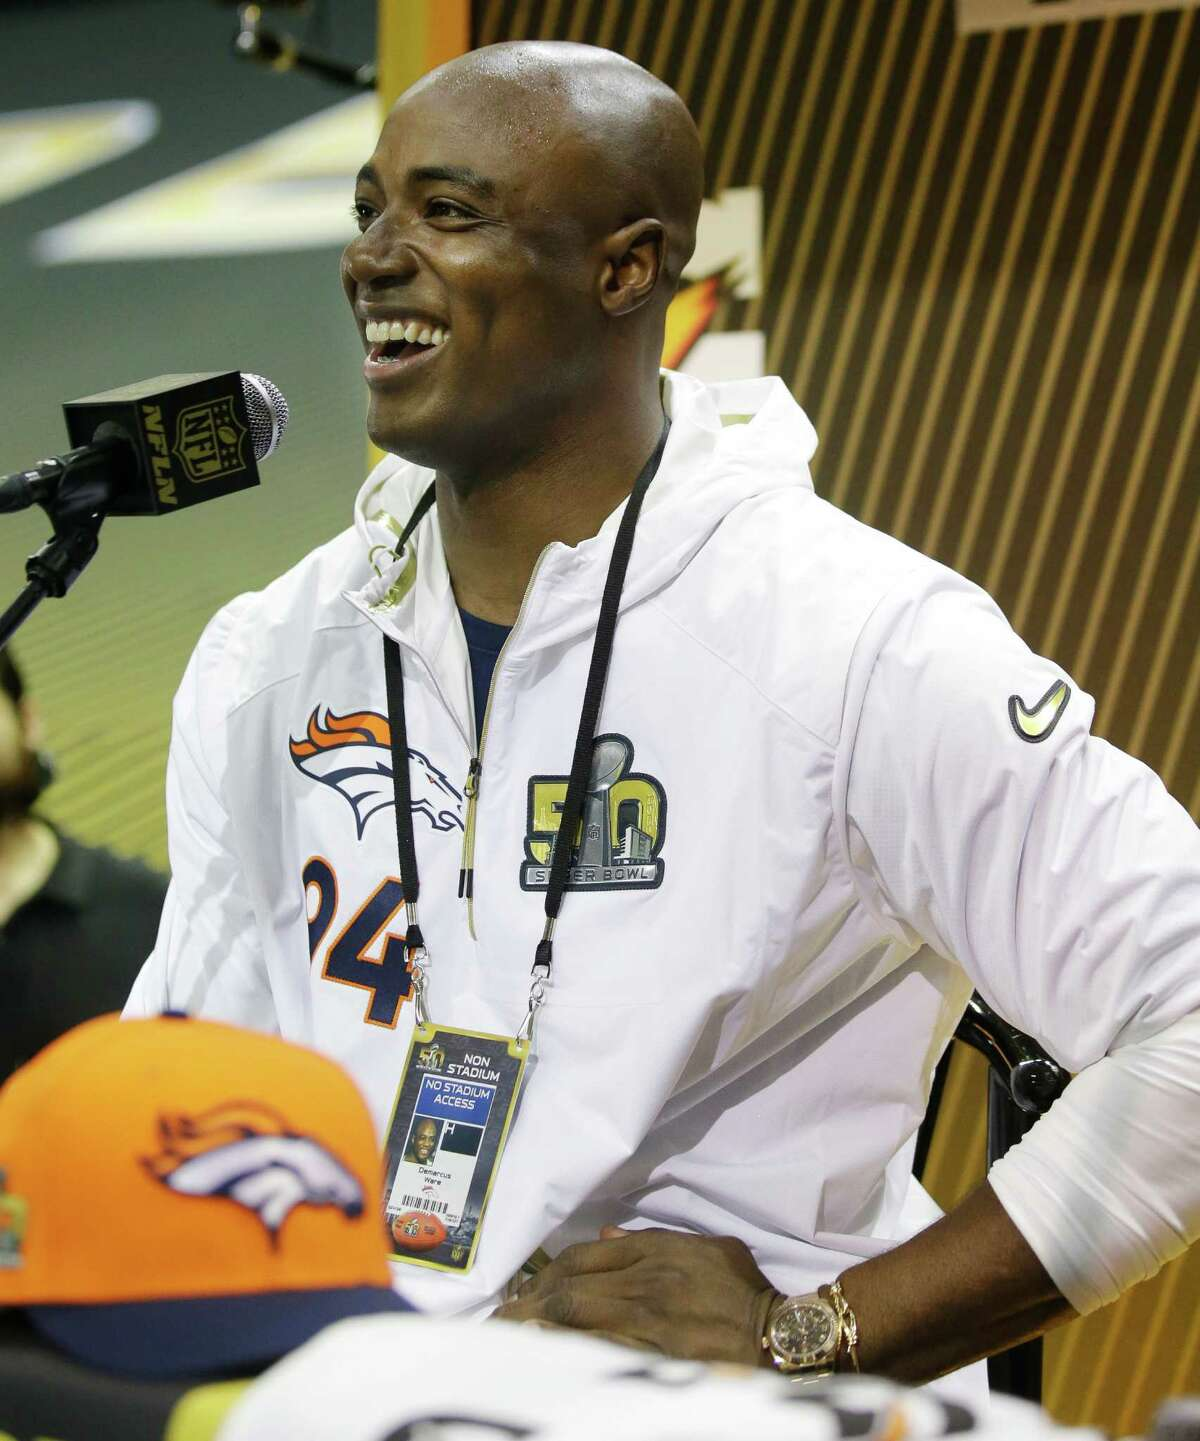 Denver Broncos outside linebacker DeMarcus Ware speaks to the media during Opening Night for the NFL Super Bowl 50 football game Monday, Feb. 1, 2016, in San Jose, Calif. (AP Photo/Marcio Jose Sanchez) ORG XMIT: NFL306